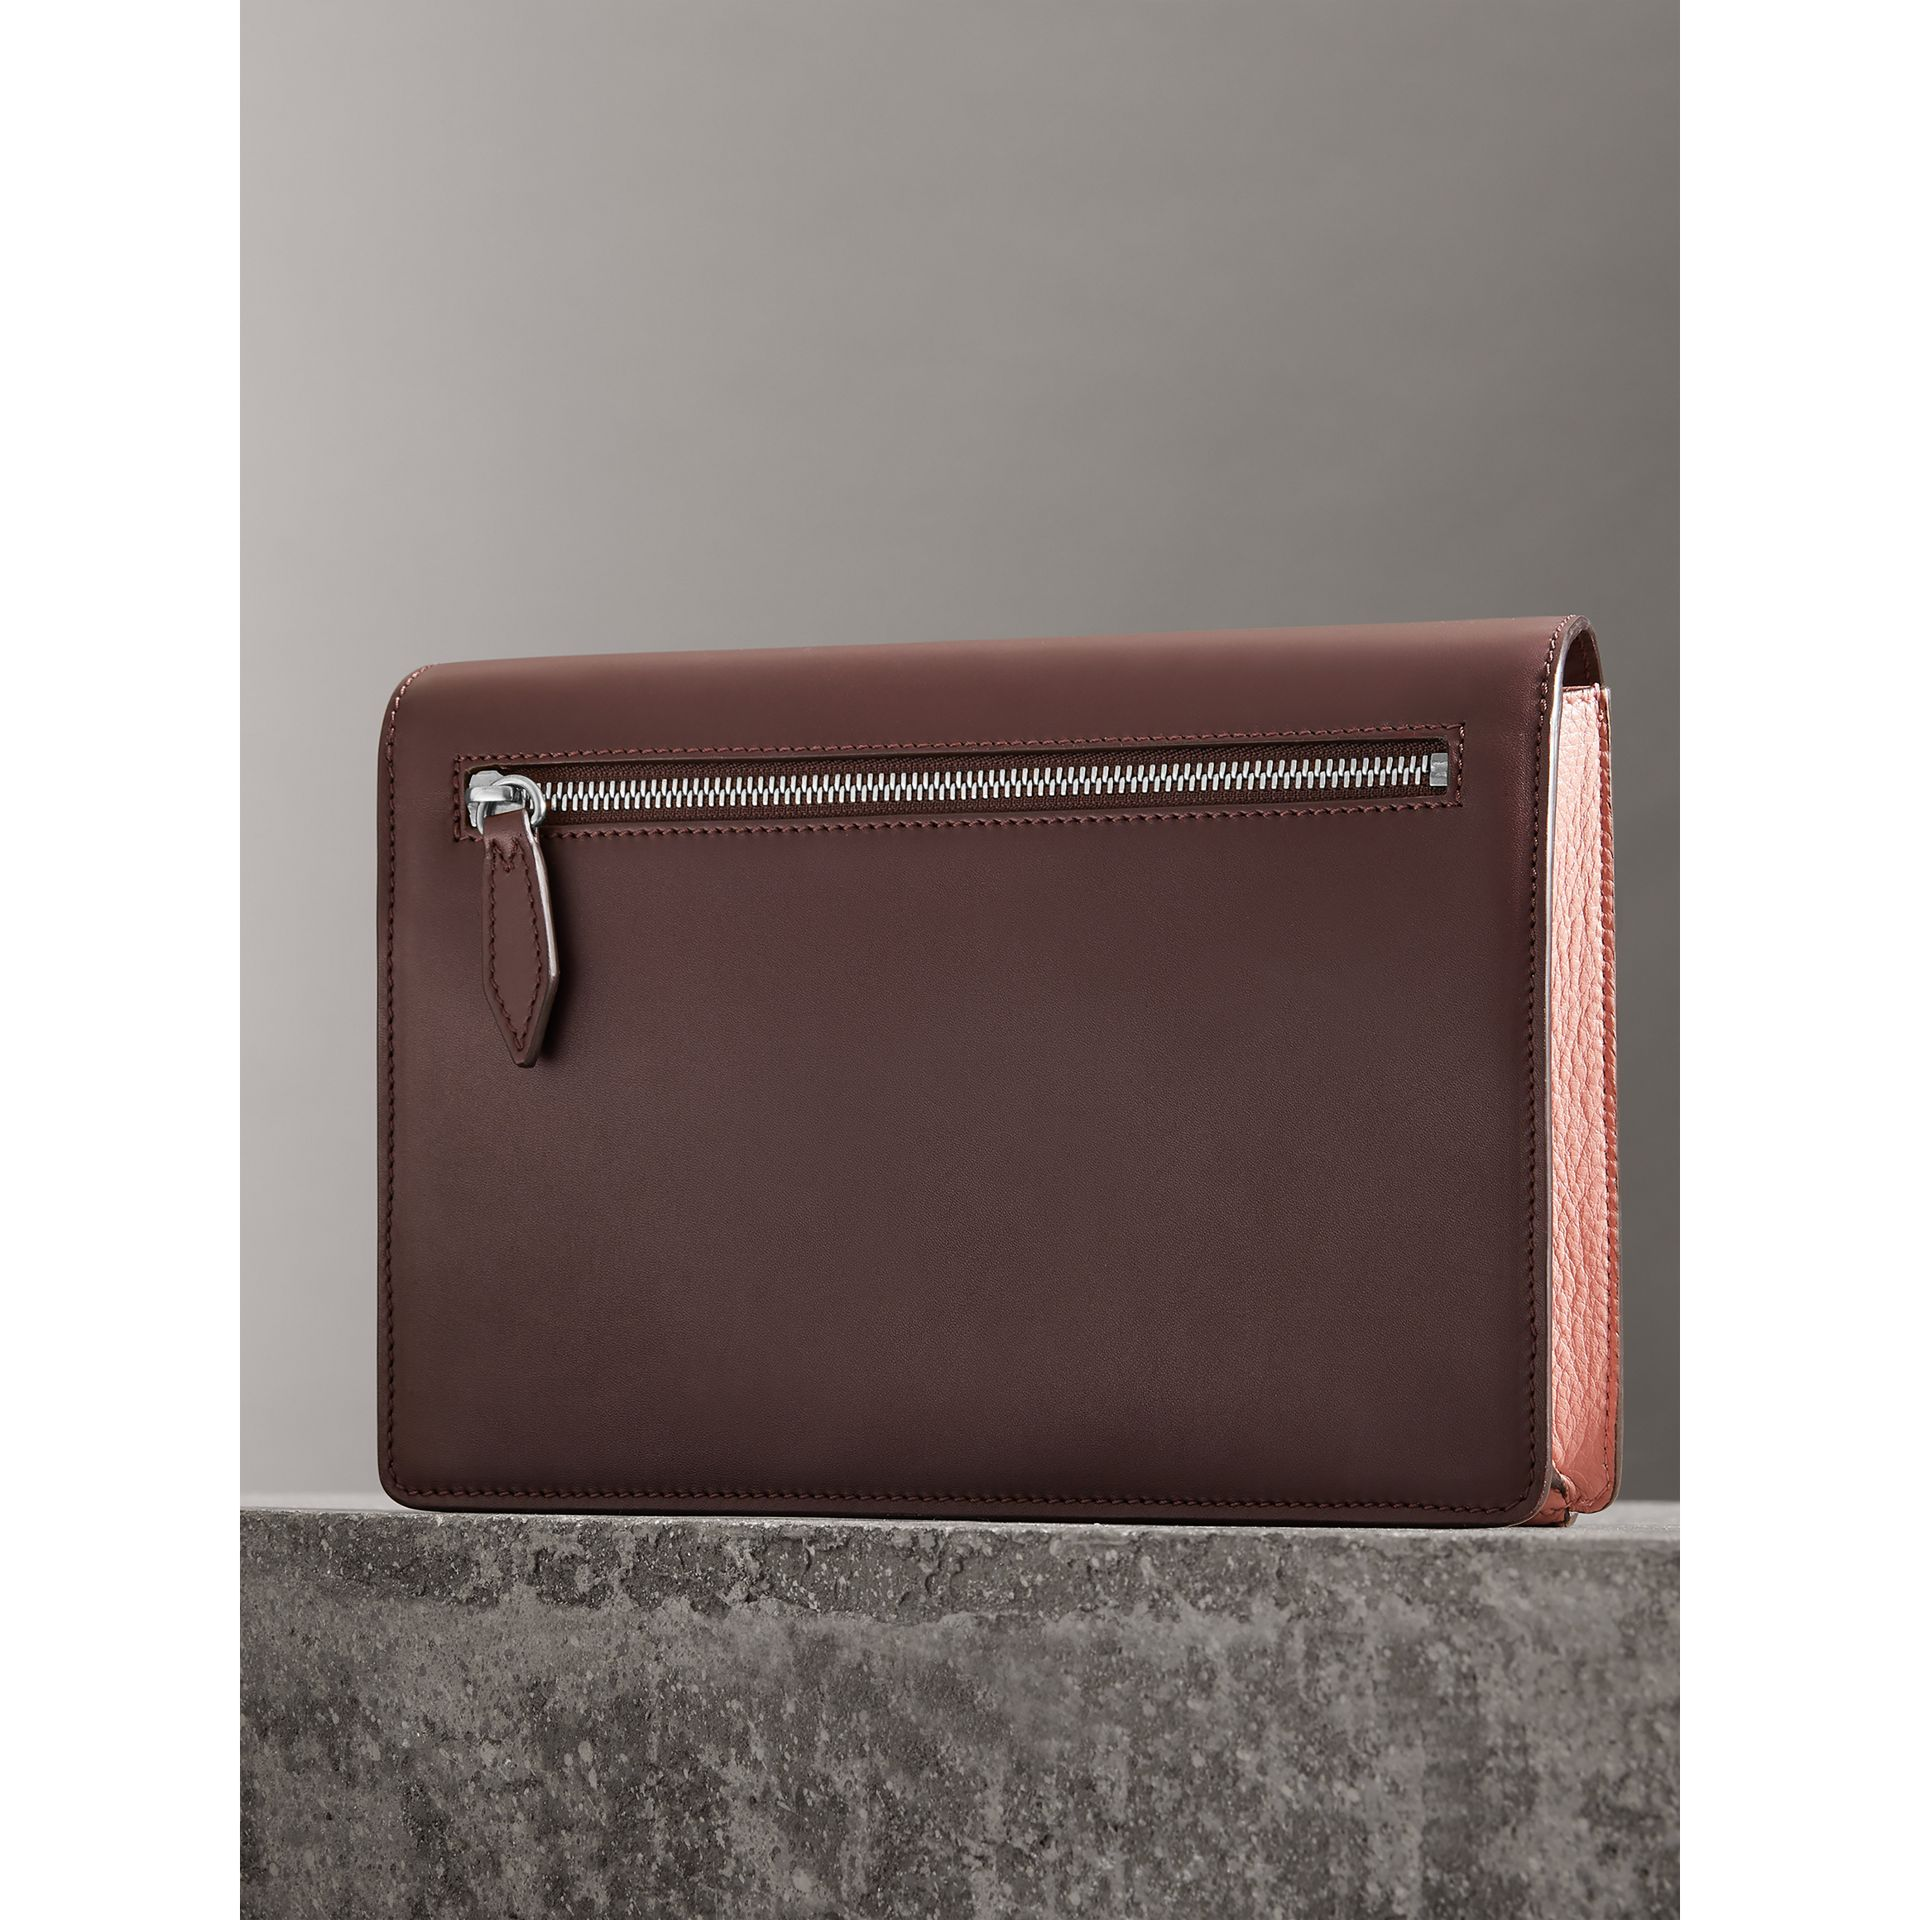 Two-tone Leather Crossbody Bag in Dusty Rose/deep Claret - Women | Burberry United Kingdom - gallery image 4